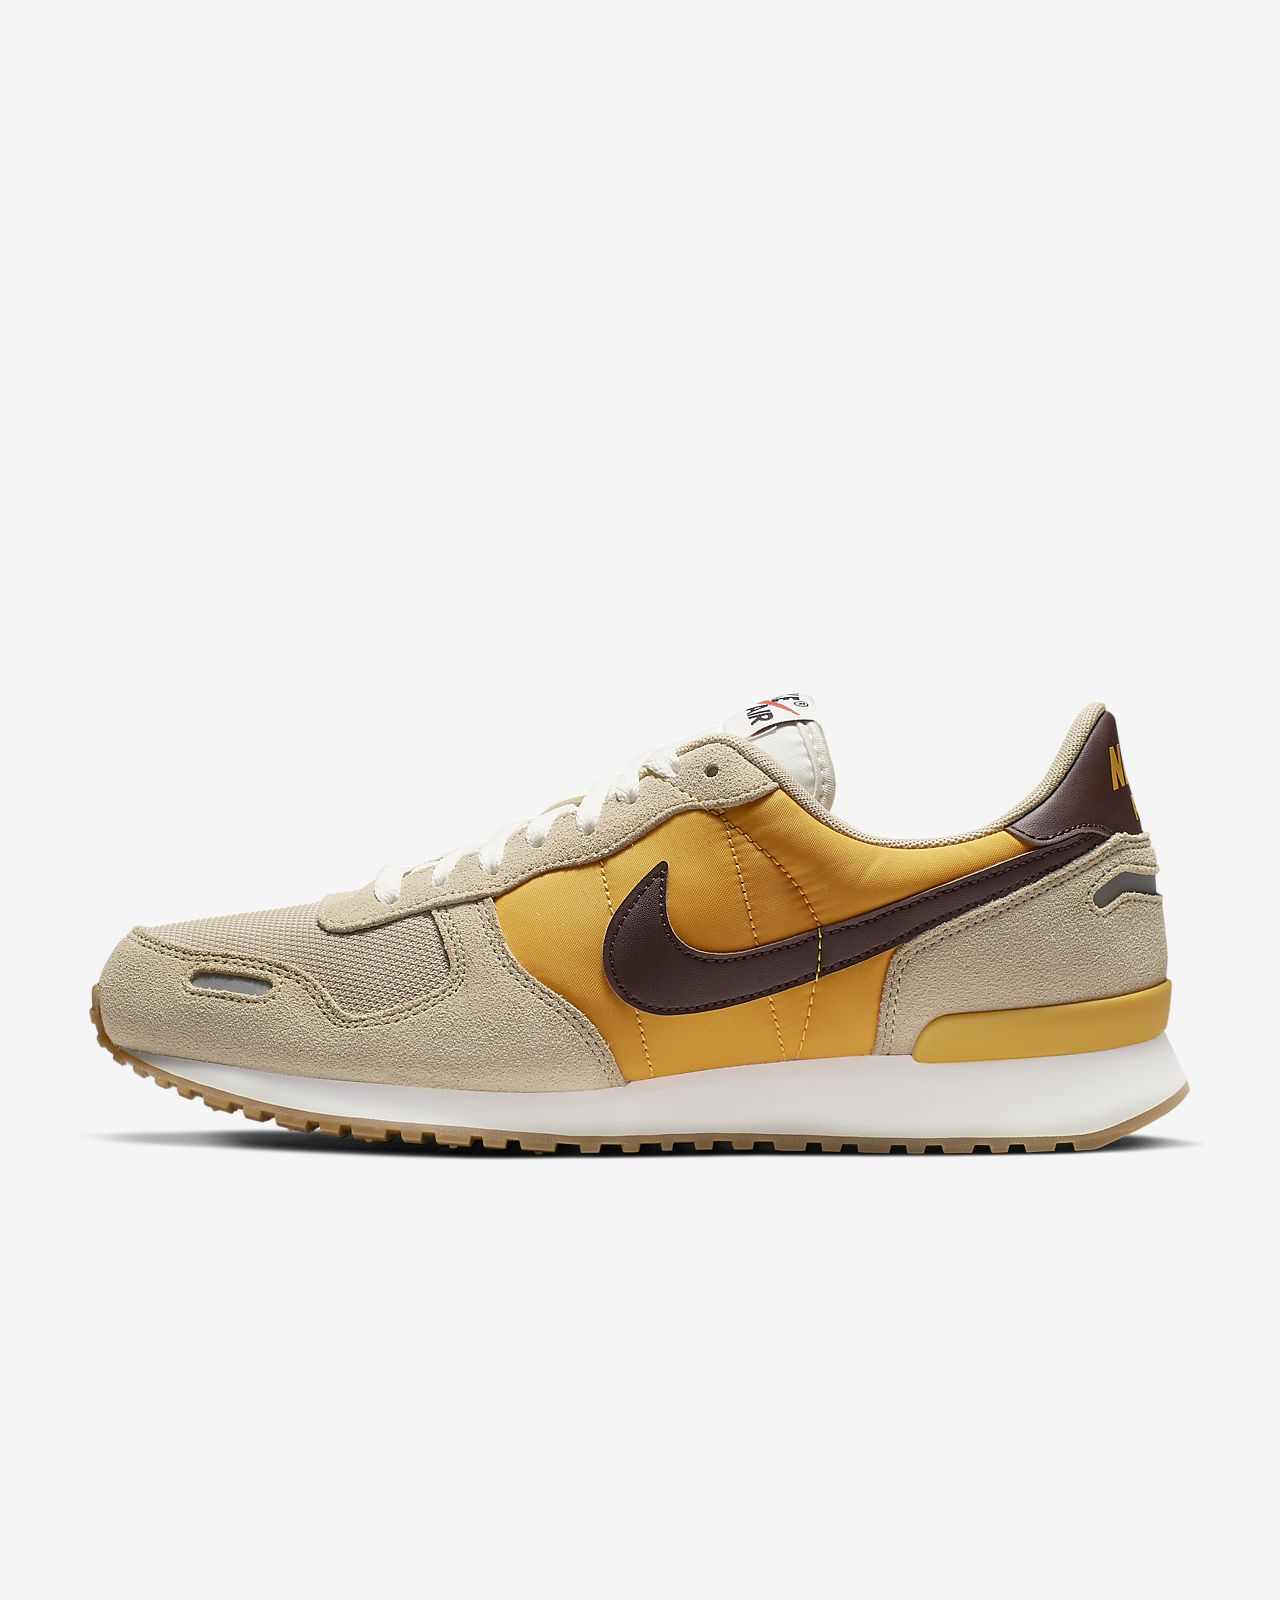 dda2f197ae8515 Low Resolution Nike Air Vortex Herrenschuh Nike Air Vortex Herrenschuh